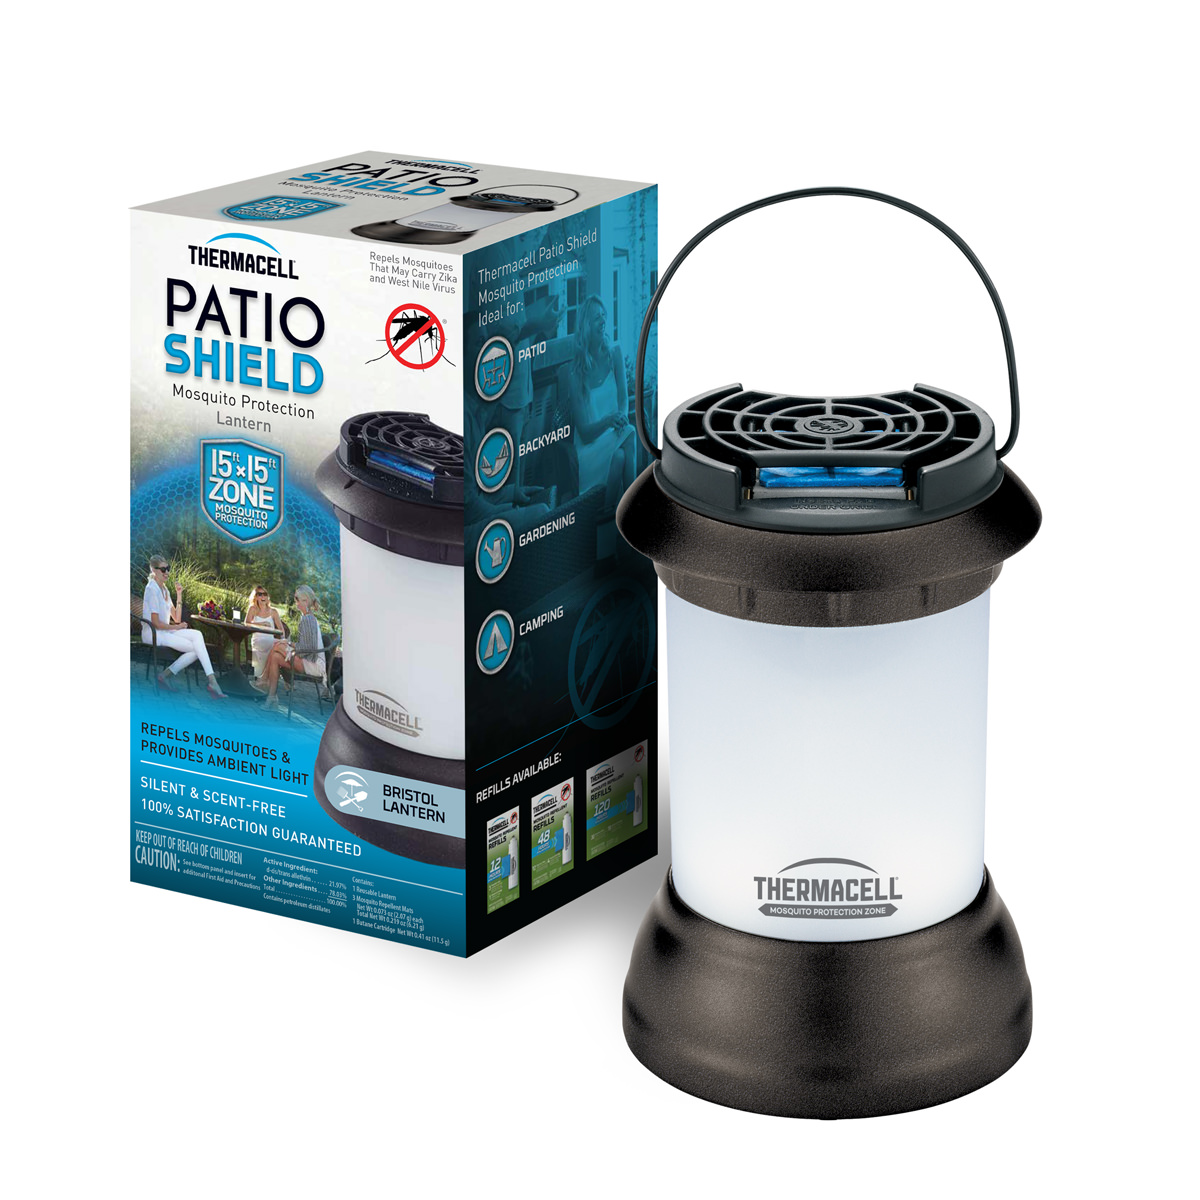 Thermacell Mosquito Repellent Bristol Lantern, Repellent + Light